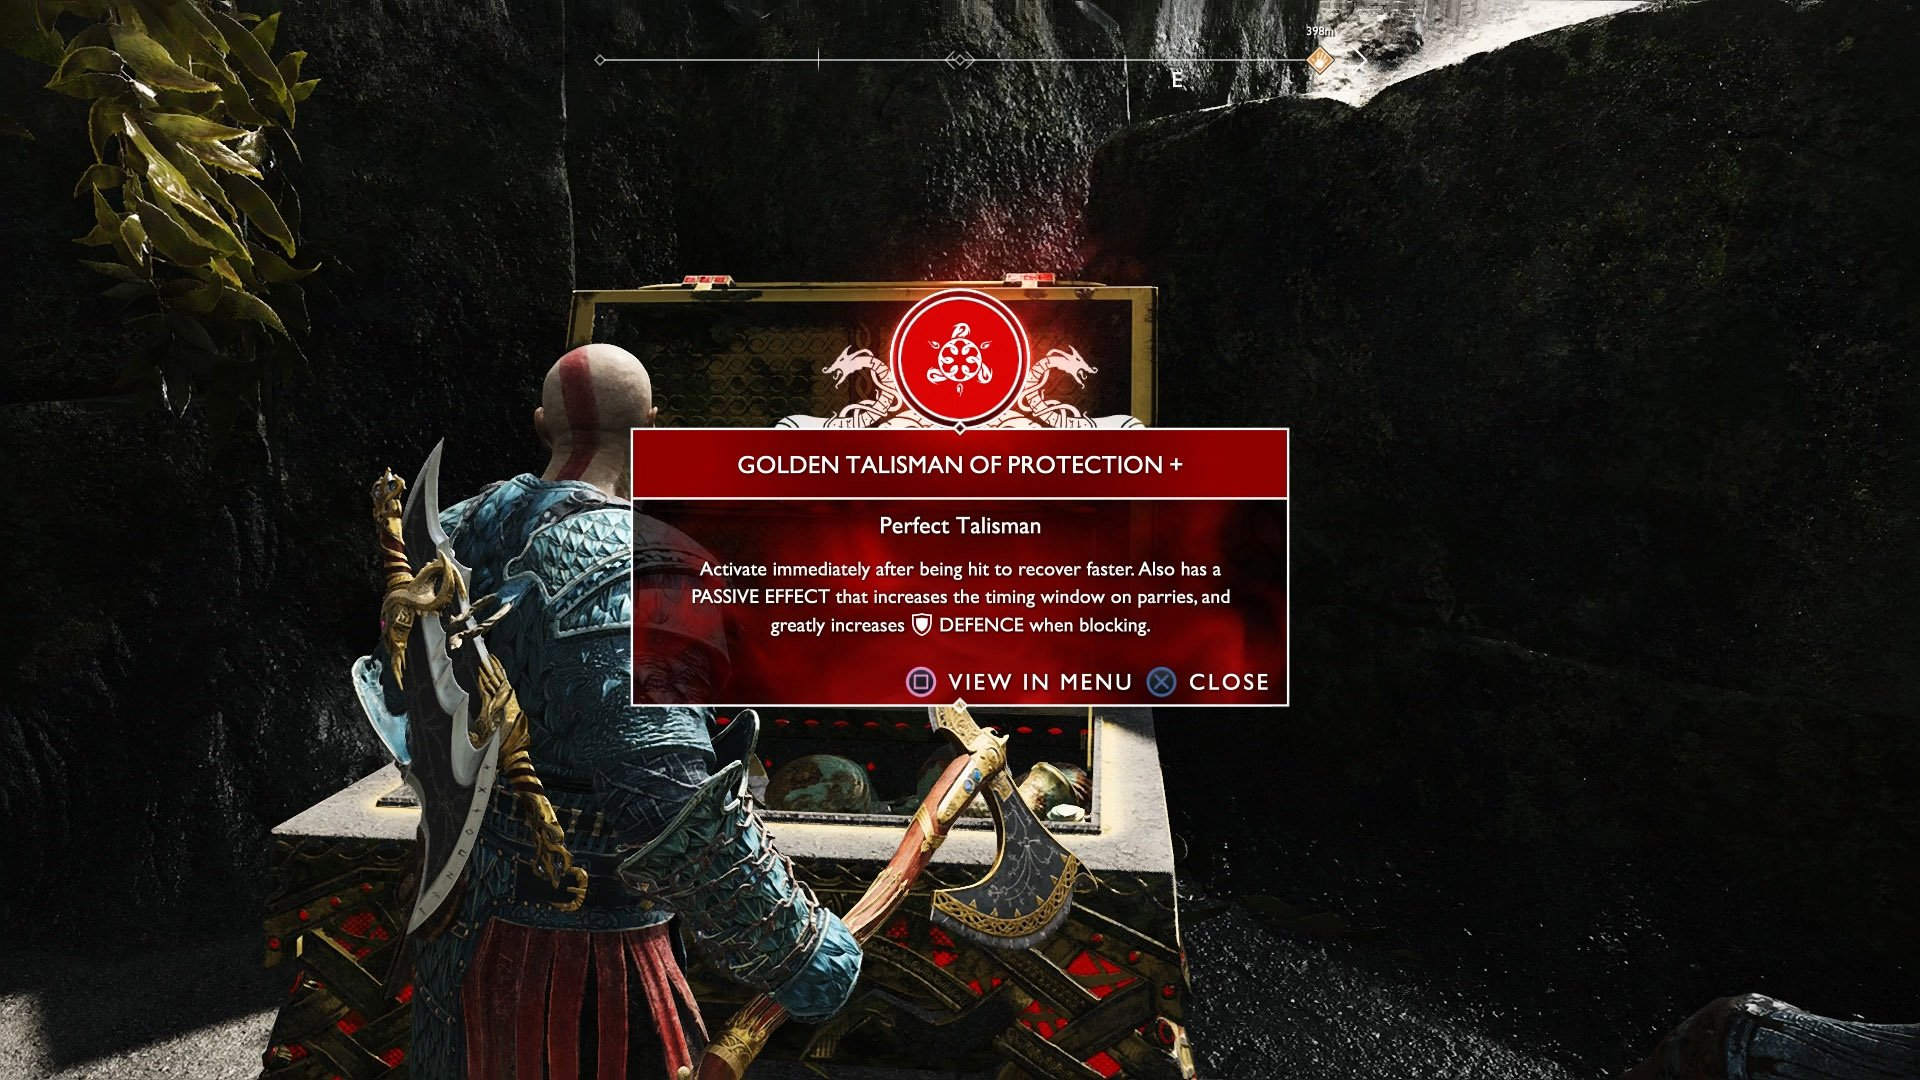 How to get the Golden Talisman of Protection+ in God of War | Shacknews